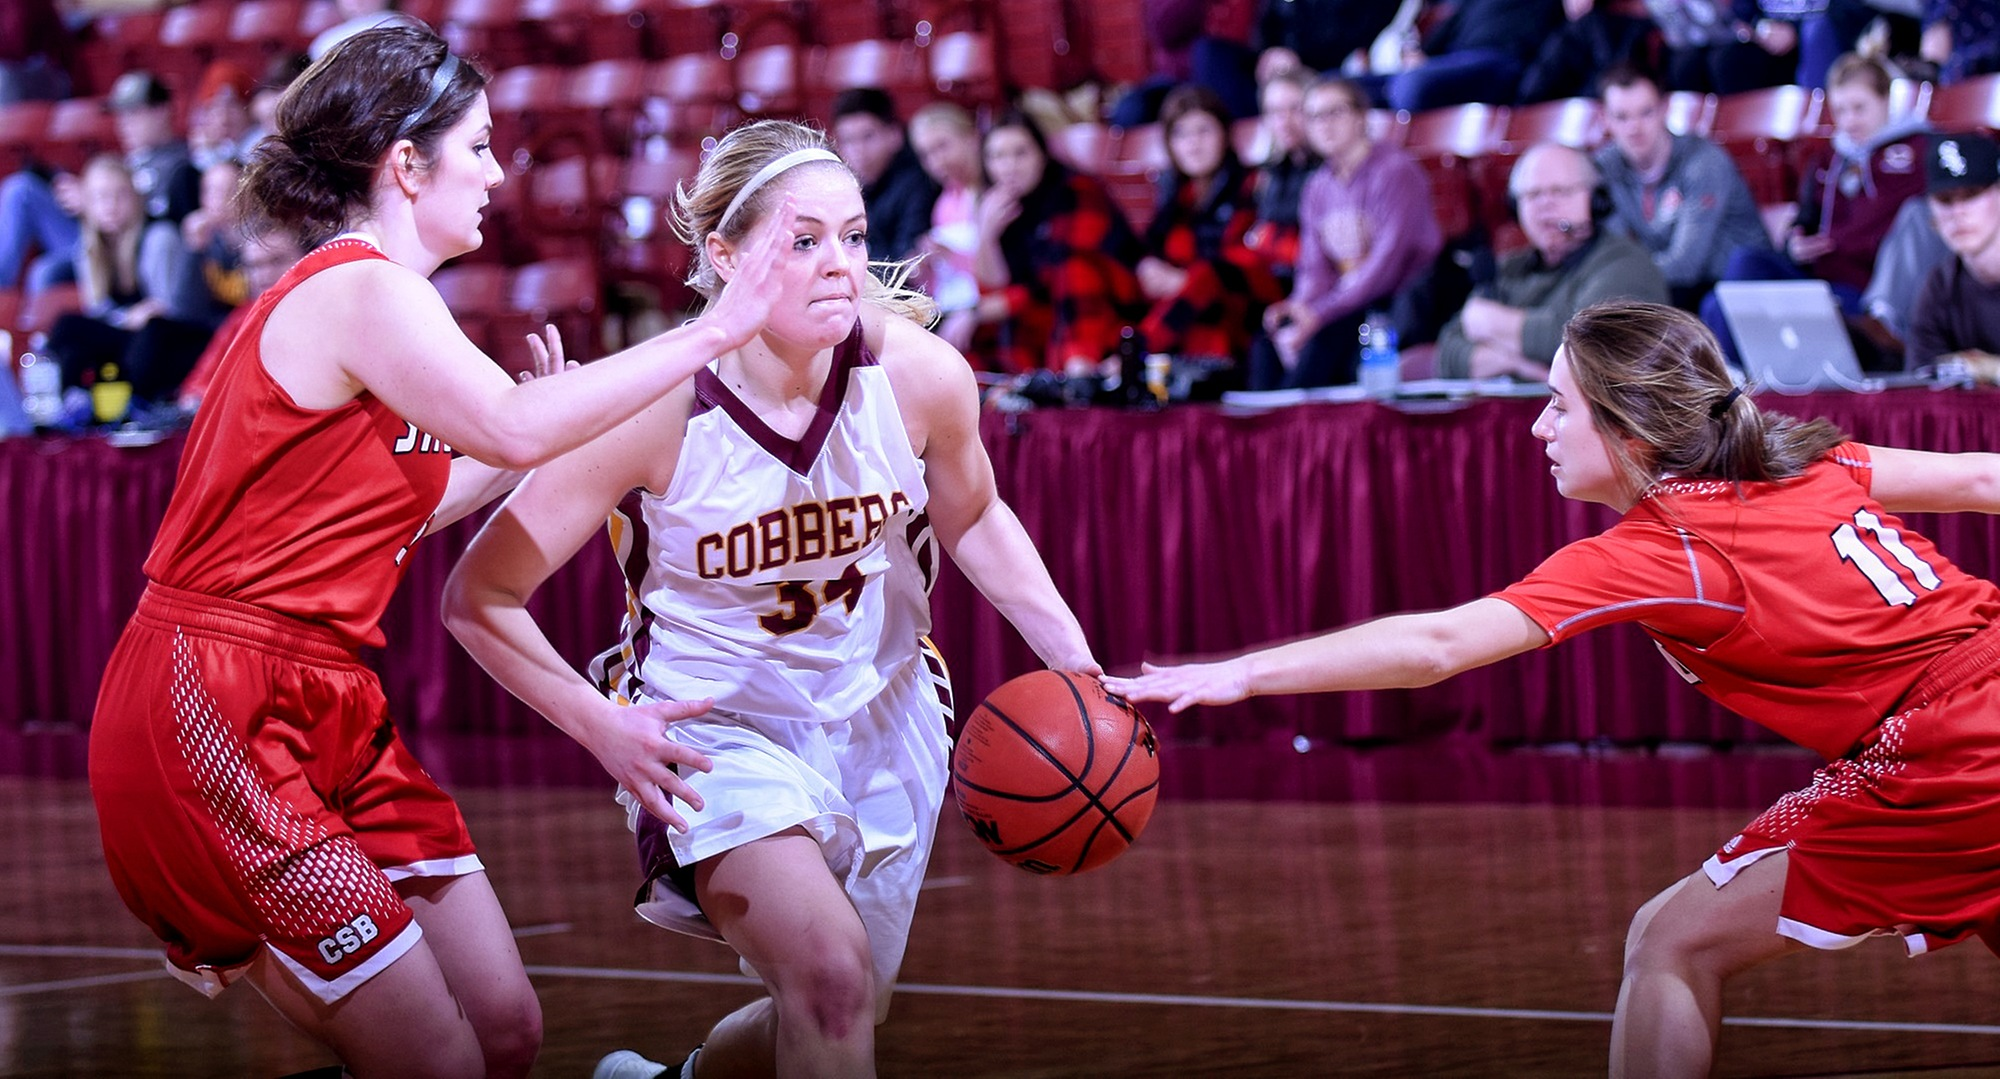 Senior Grace Wolhowe dribble through the defense in the second half of the Cobbers' game with St. Benedict. Wolhowe scored a career-high 27 points in the game.